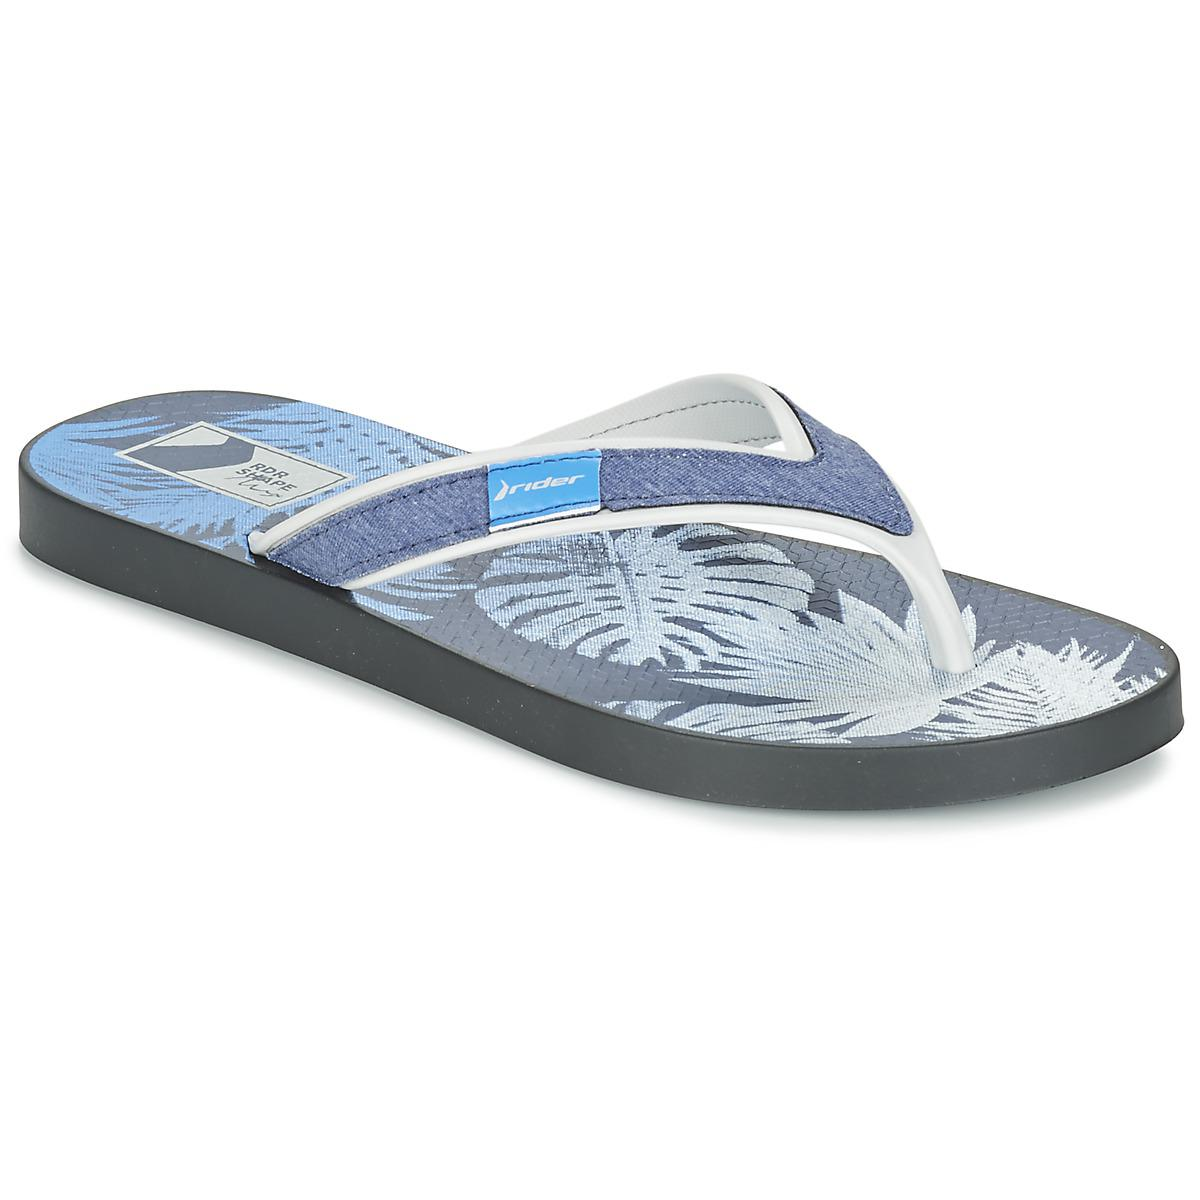 low priced d0c62 3bf99 rider-blue-Shape-Mix-Ad-Mens-Flip-Flops-Sandals-shoes-In-Blue.jpeg